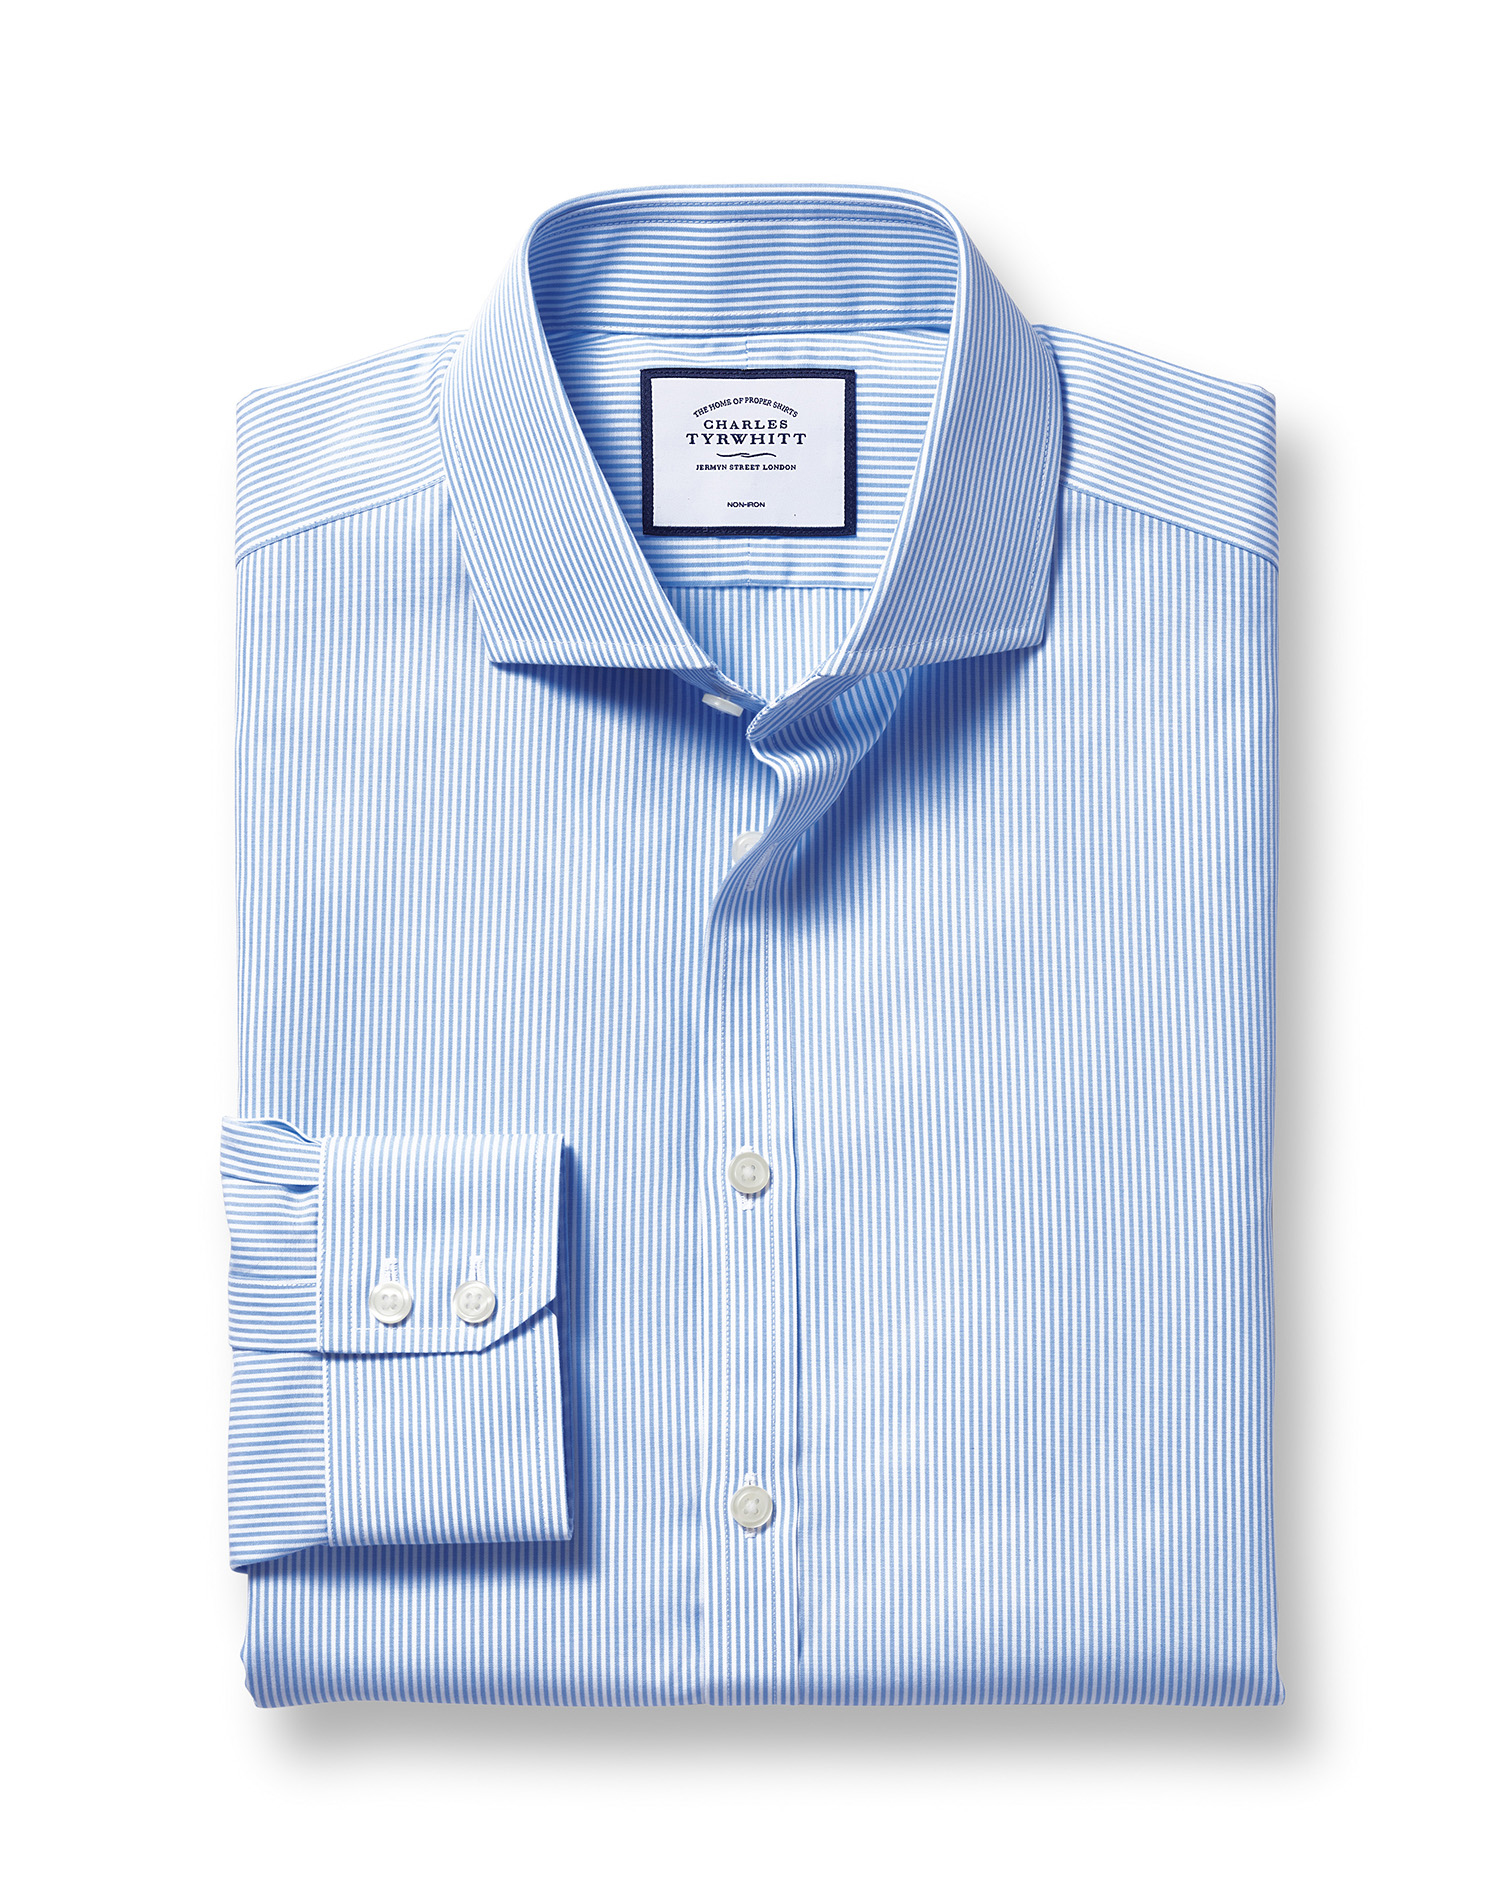 Slim Fit Cutaway Non-Iron Bengal Stripe Sky Blue Cotton Formal Shirt Double Cuff Size 16.5/34 by Cha